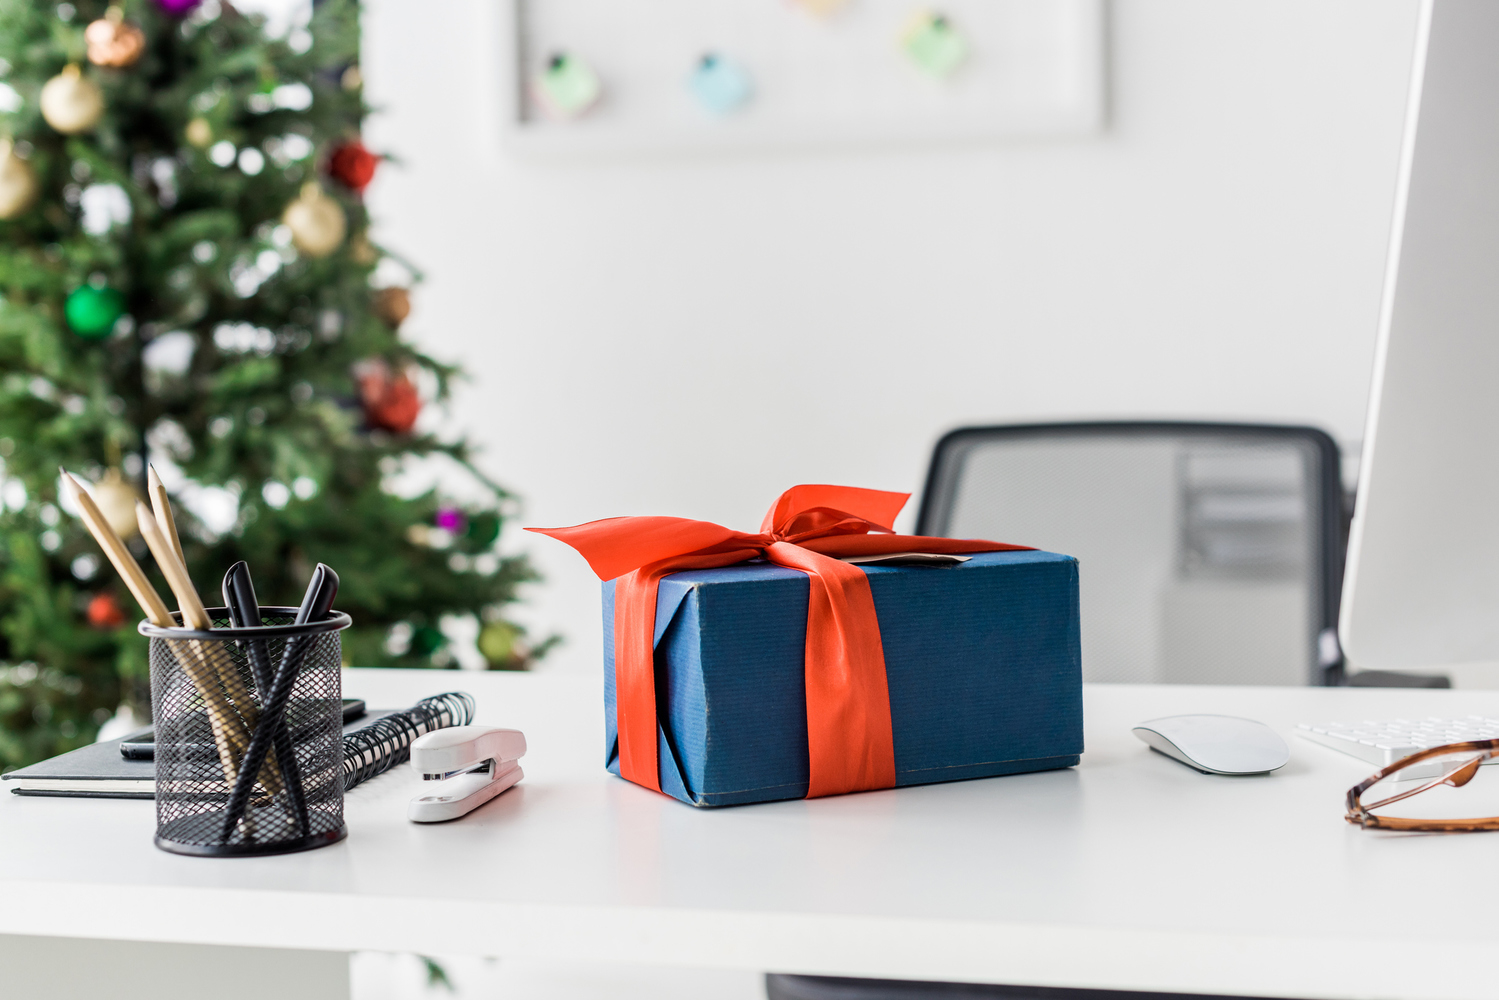 Affordable Secret Santa Gift Ideas for Co-Workers